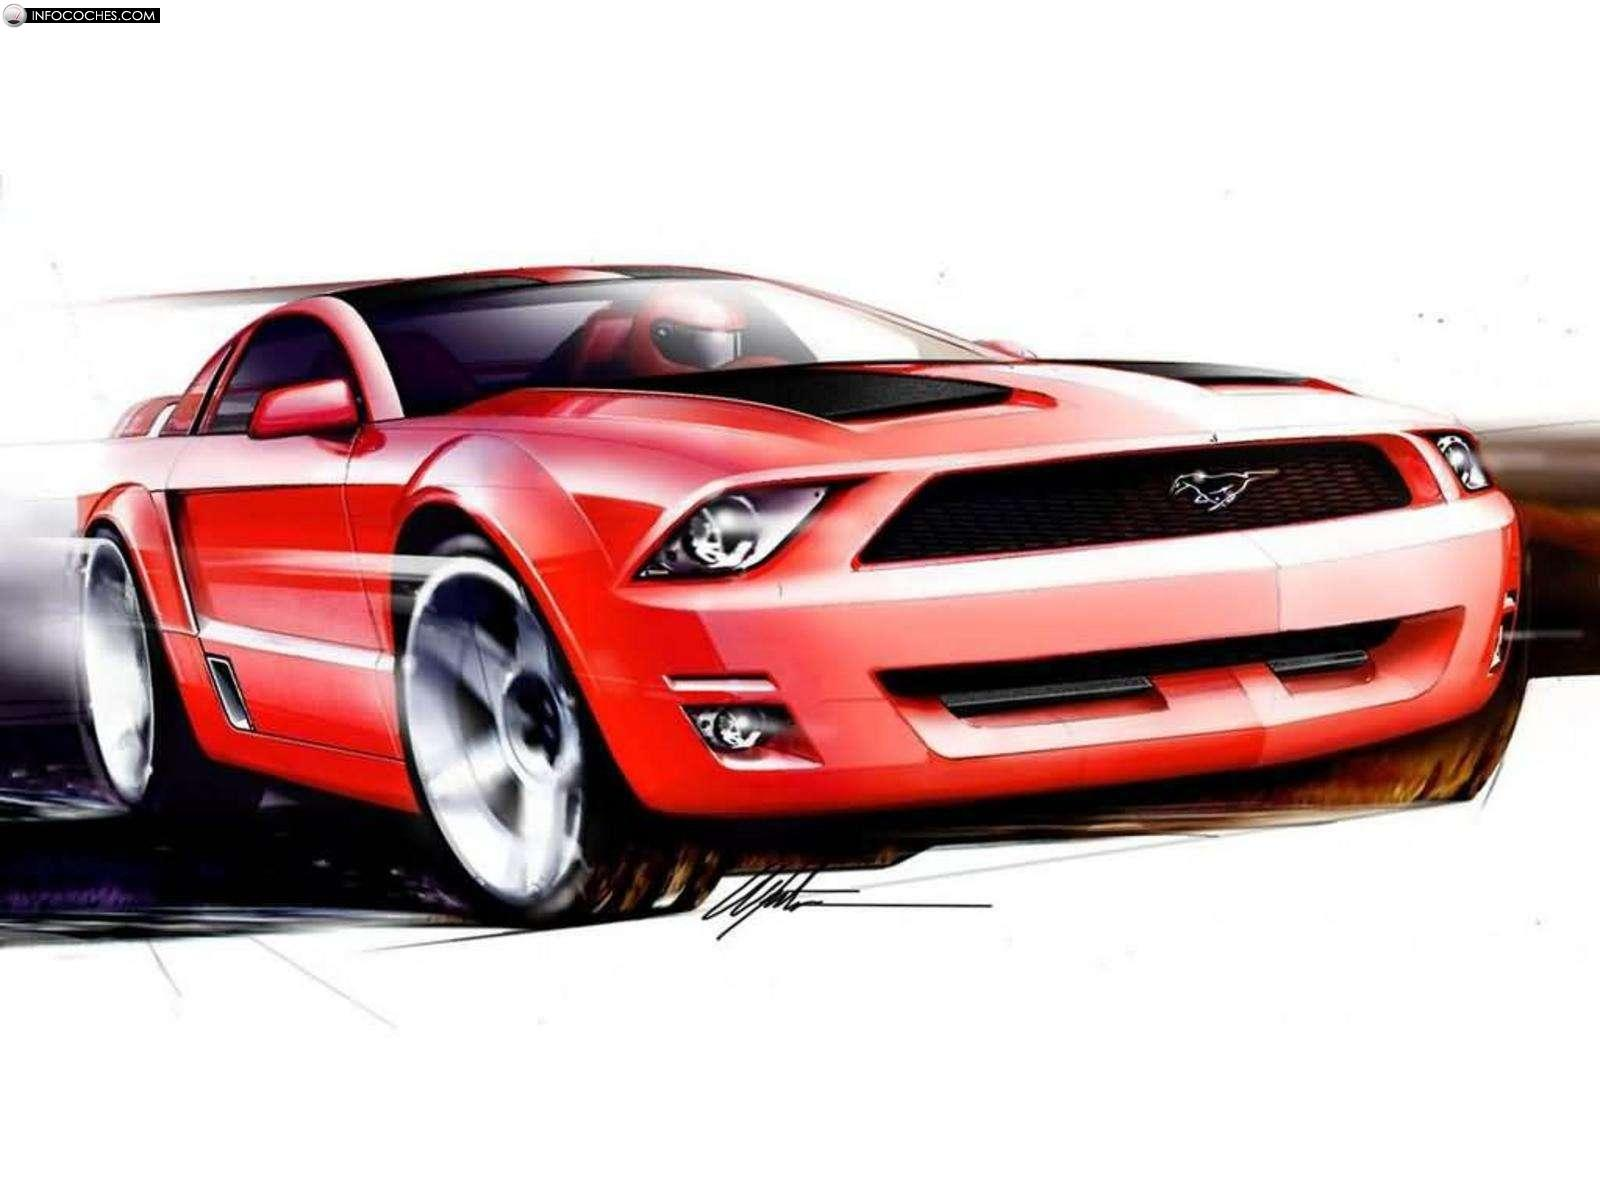 2018 Ford Mustang GT Coupe Concept photo - 4